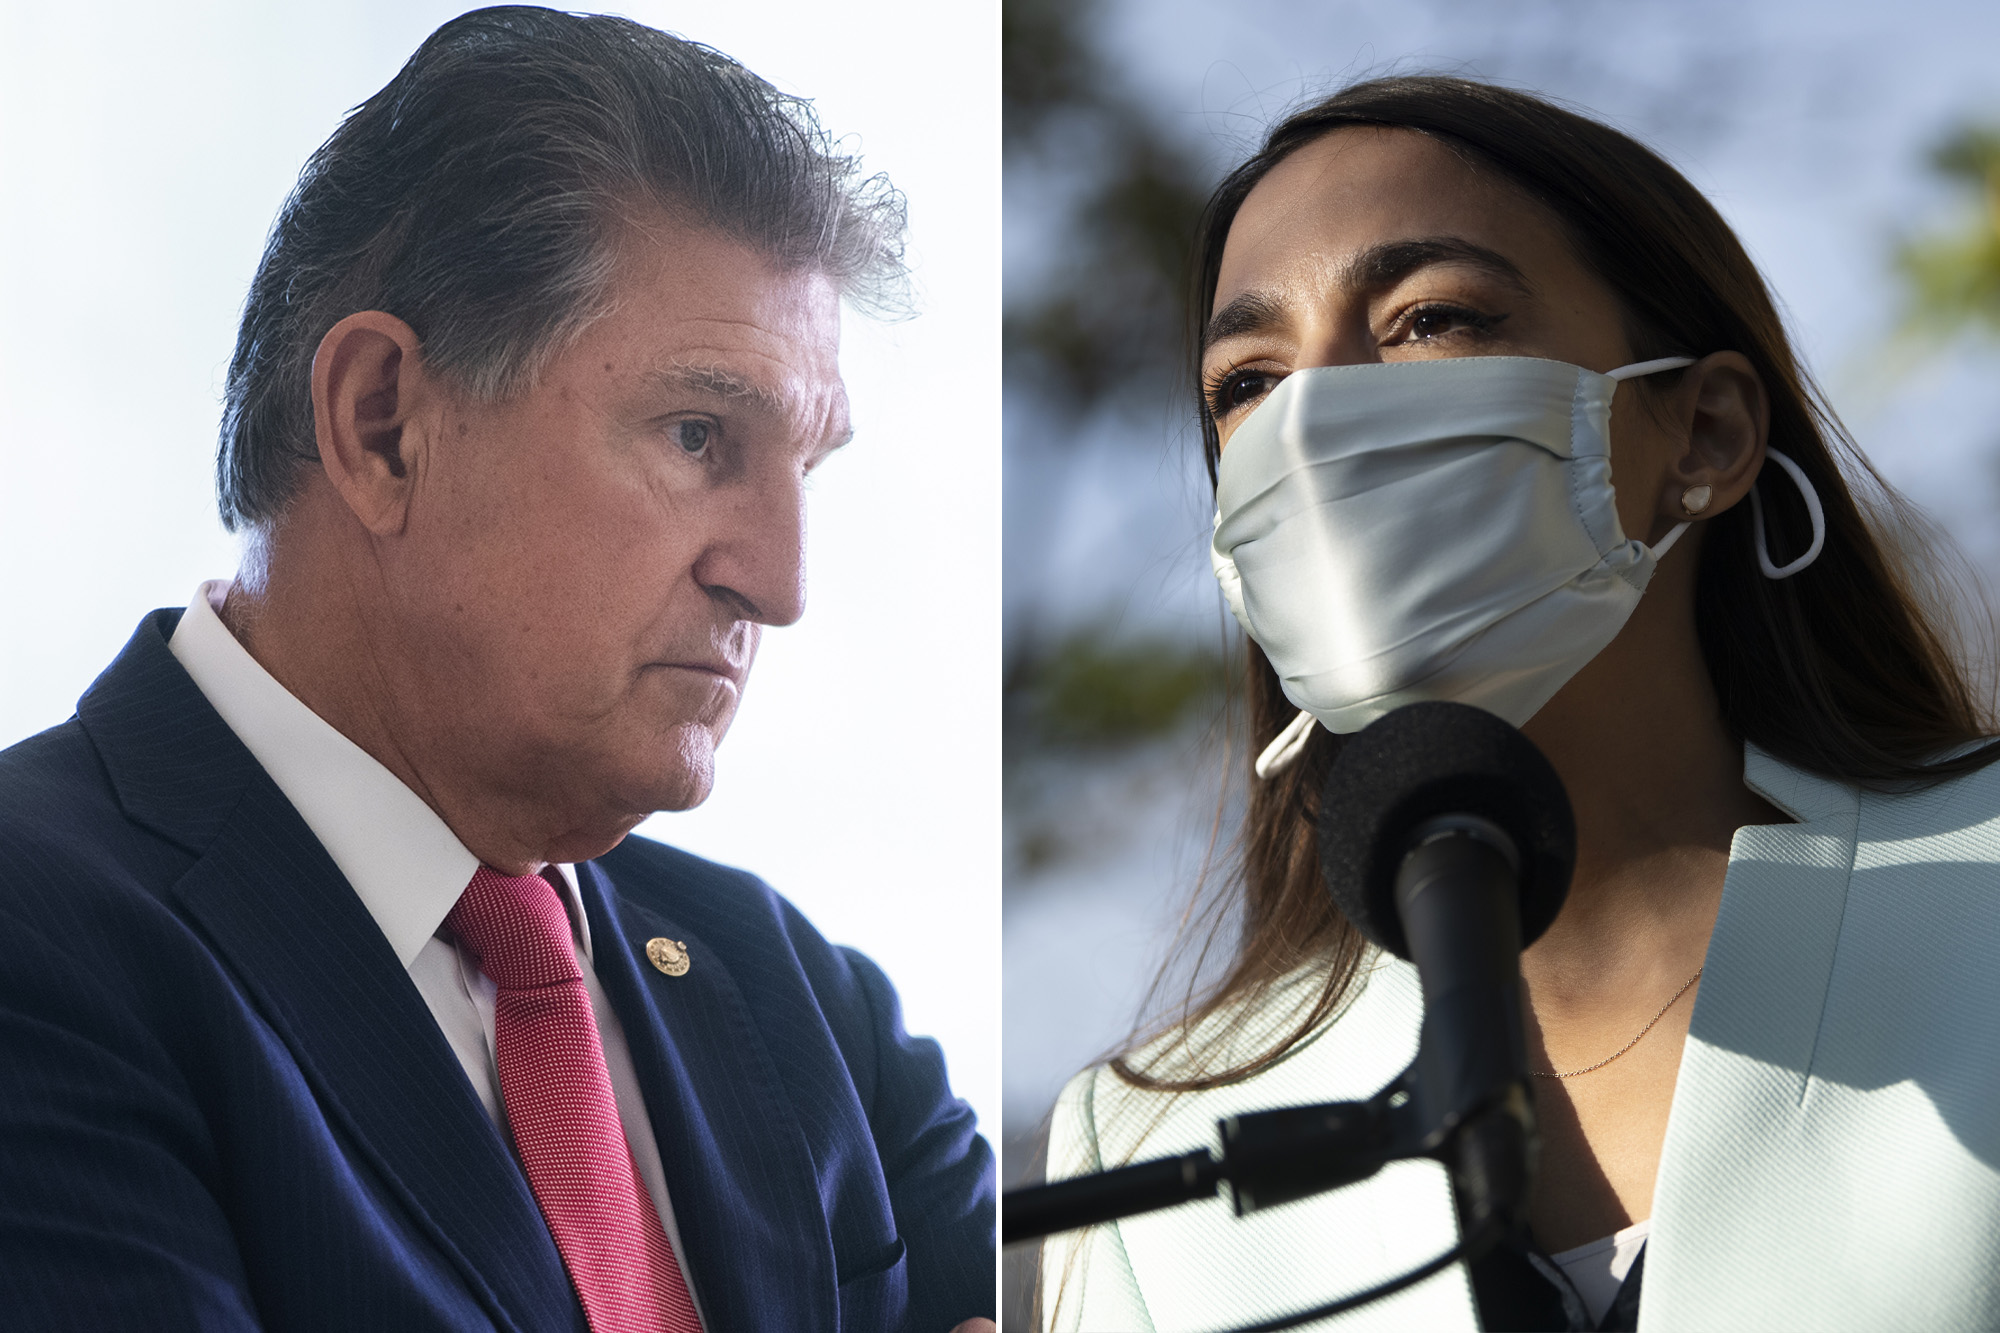 Sen. Joe Manchin knocks AOC amid ongoing feud